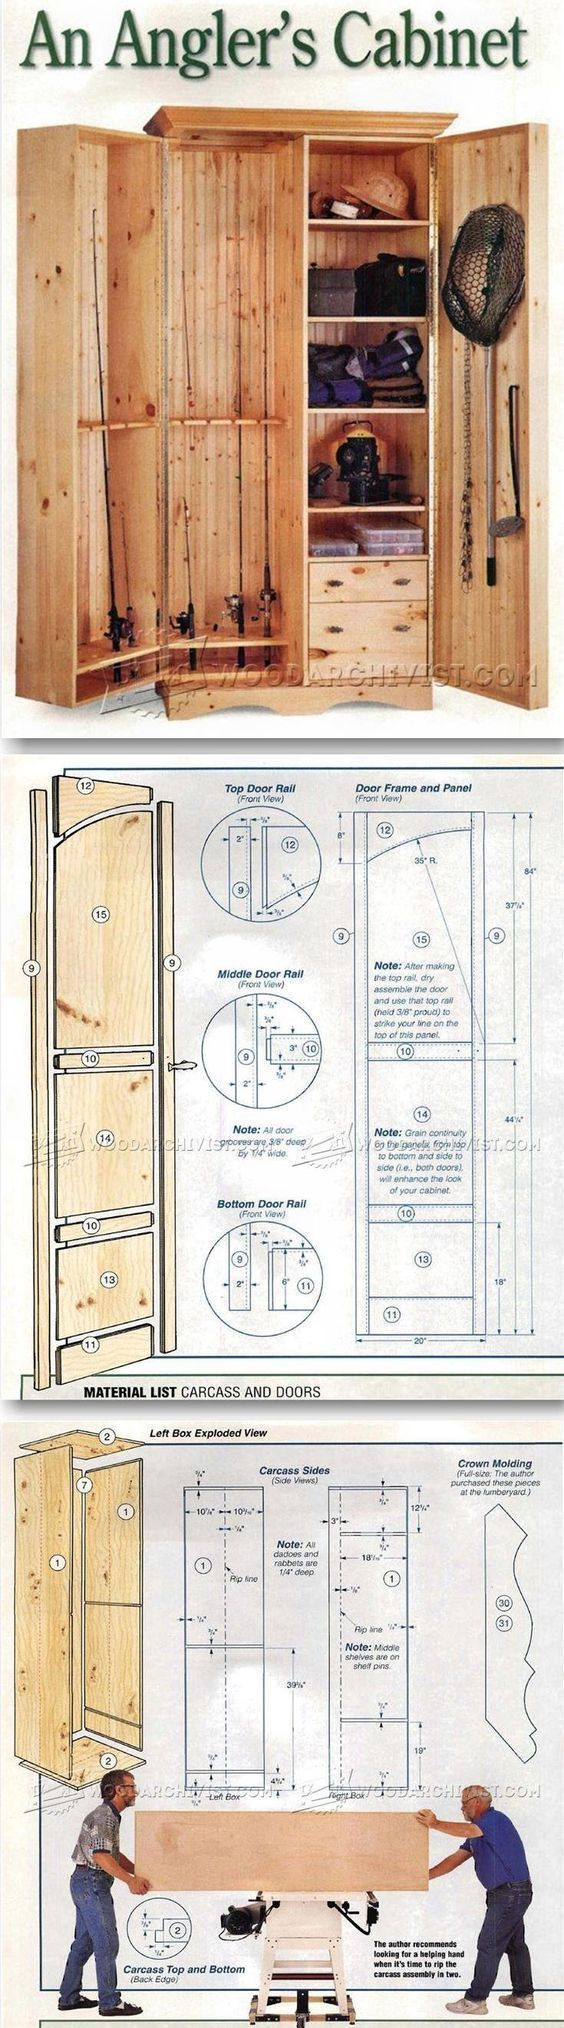 Fishing Rod Cabinet Plans - Furniture Plans and Projects